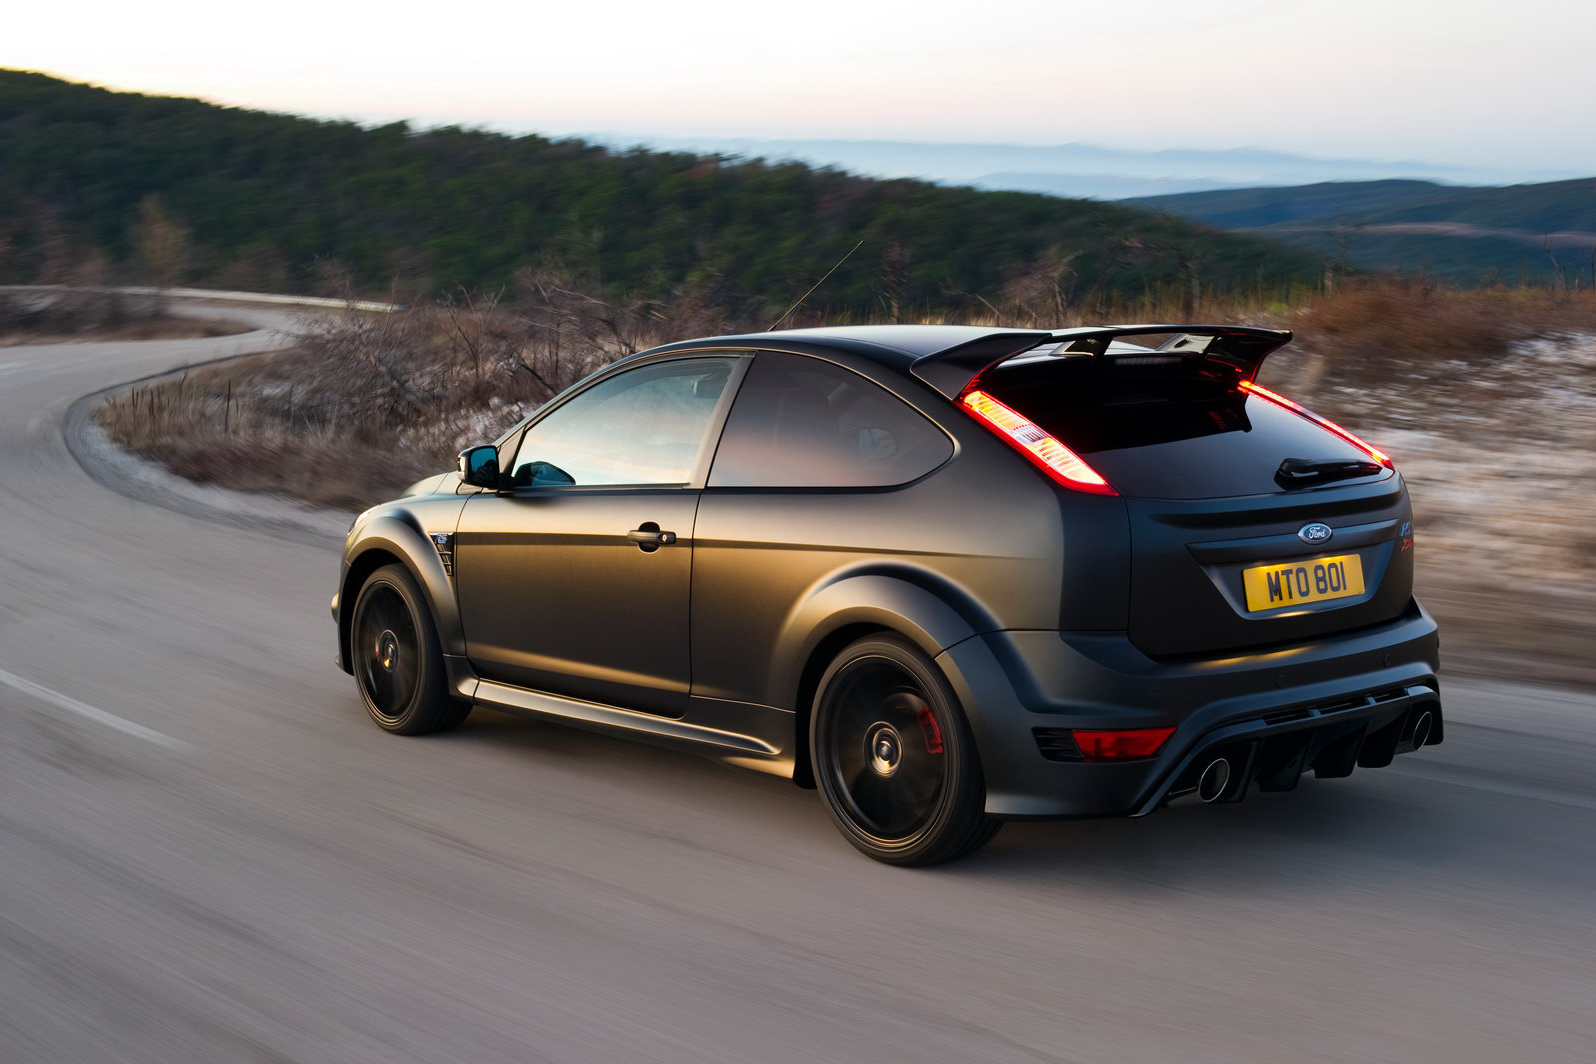 ford focus rs500 technical details history photos on better parts ltd. Black Bedroom Furniture Sets. Home Design Ideas